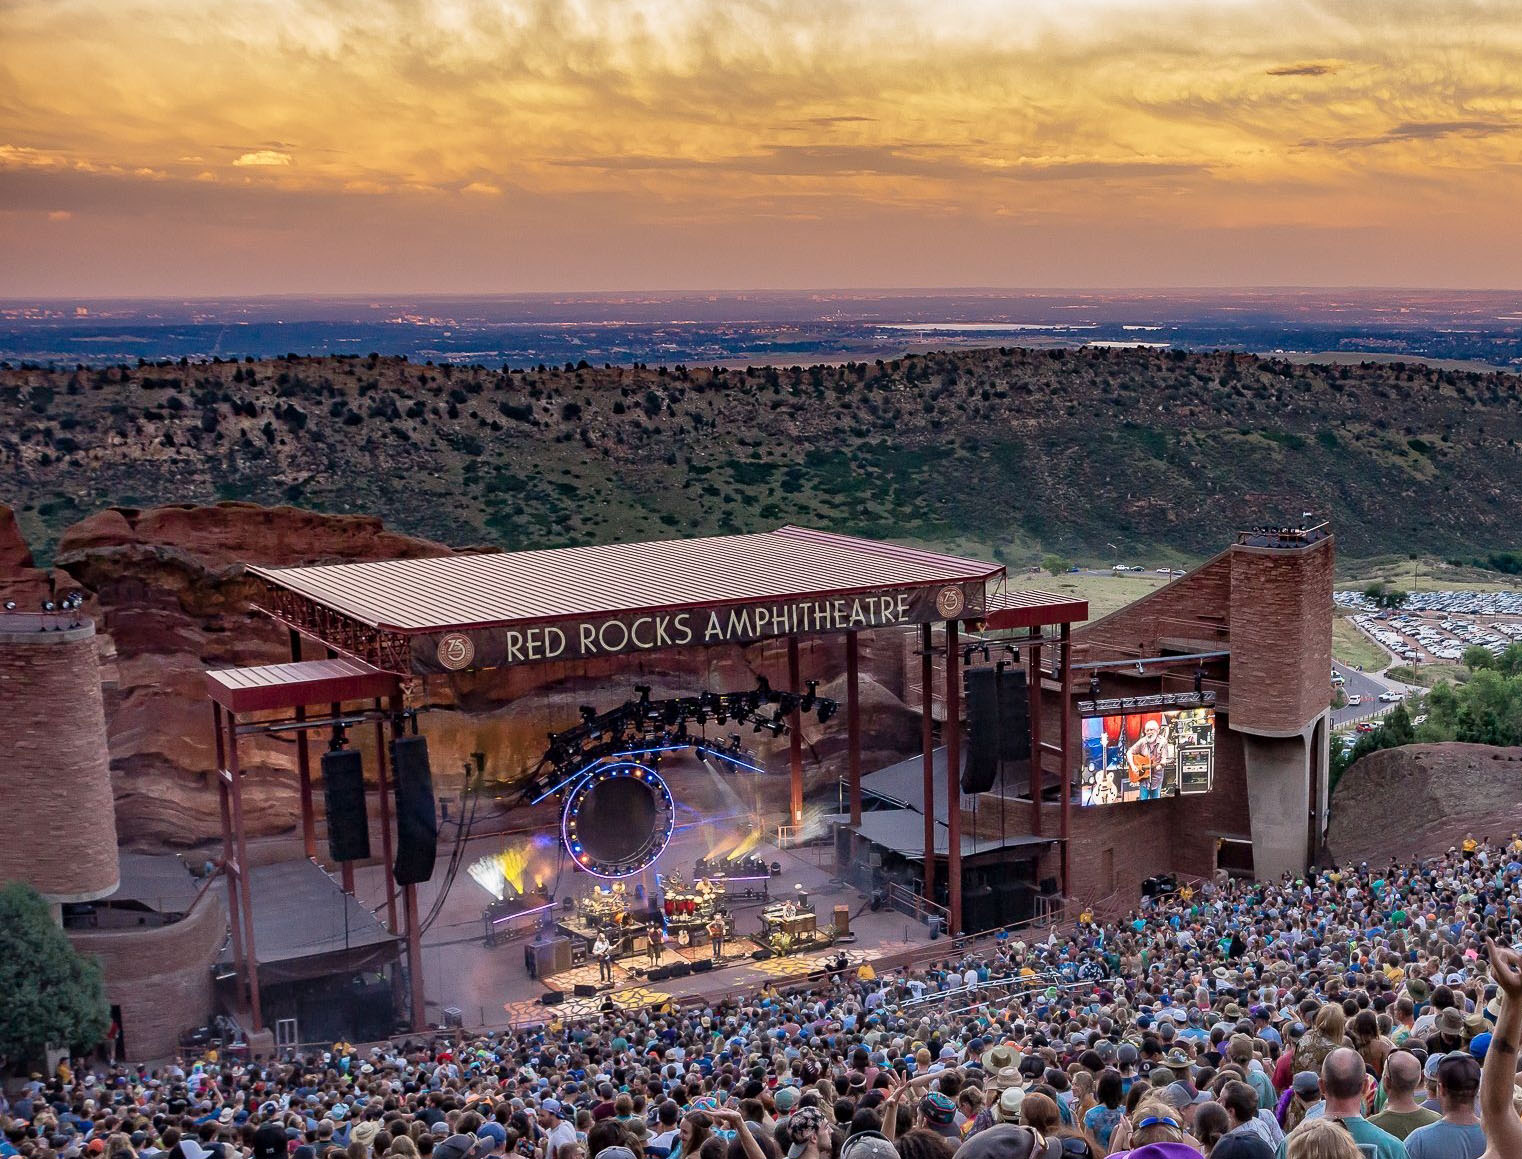 2019 Red Rocks Concert Season is starting soon, buy tickets now before it's too late.